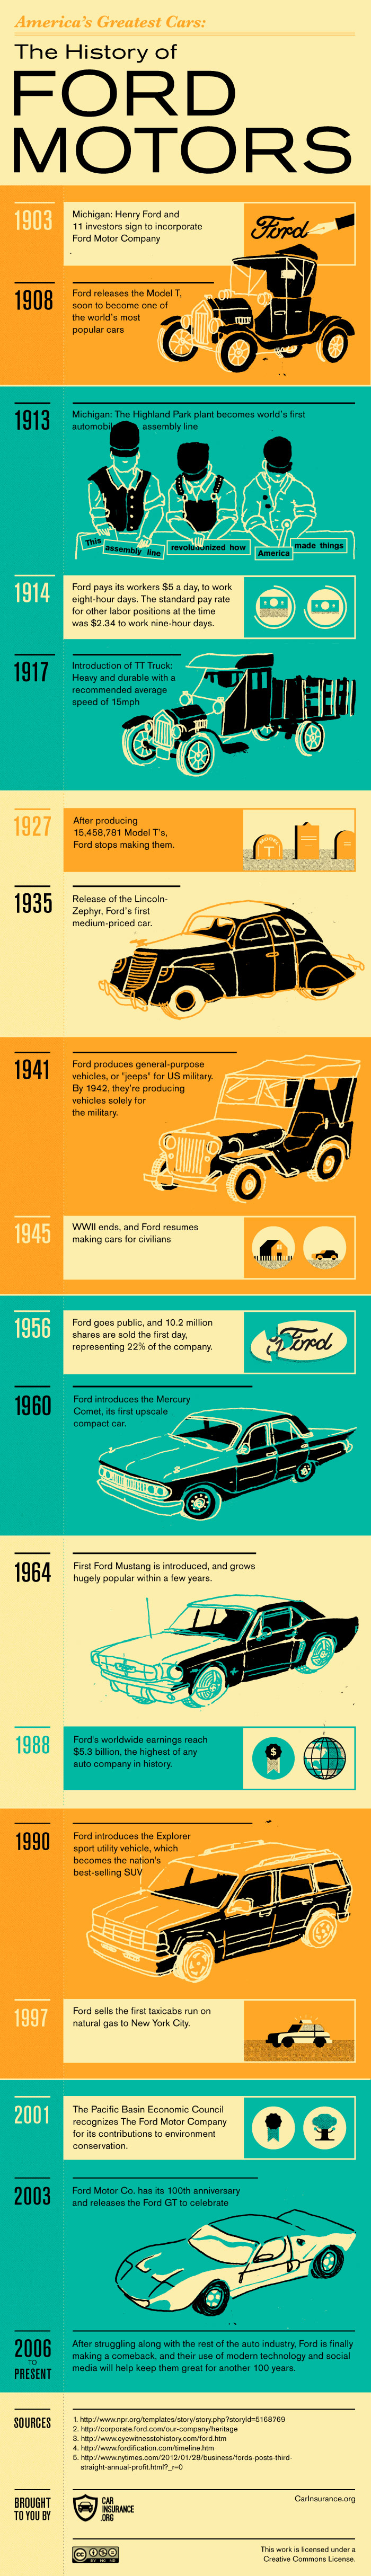 America\'s Greatest Cars: The History of Ford Motors | StangBangers ...